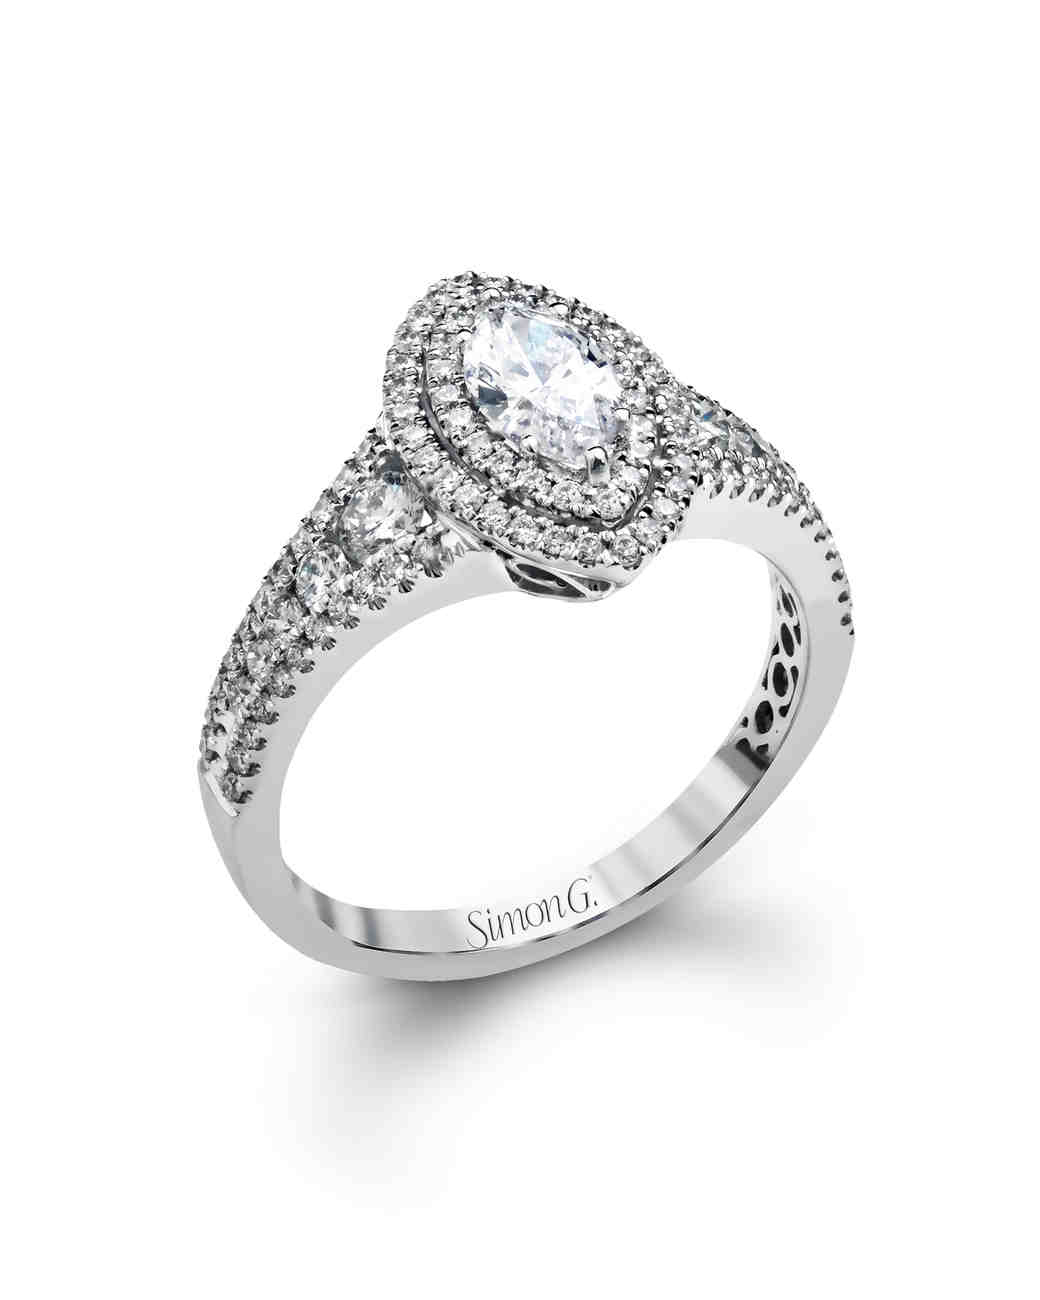 Simon G. Marquise-Cut White Gold Engagement Ring